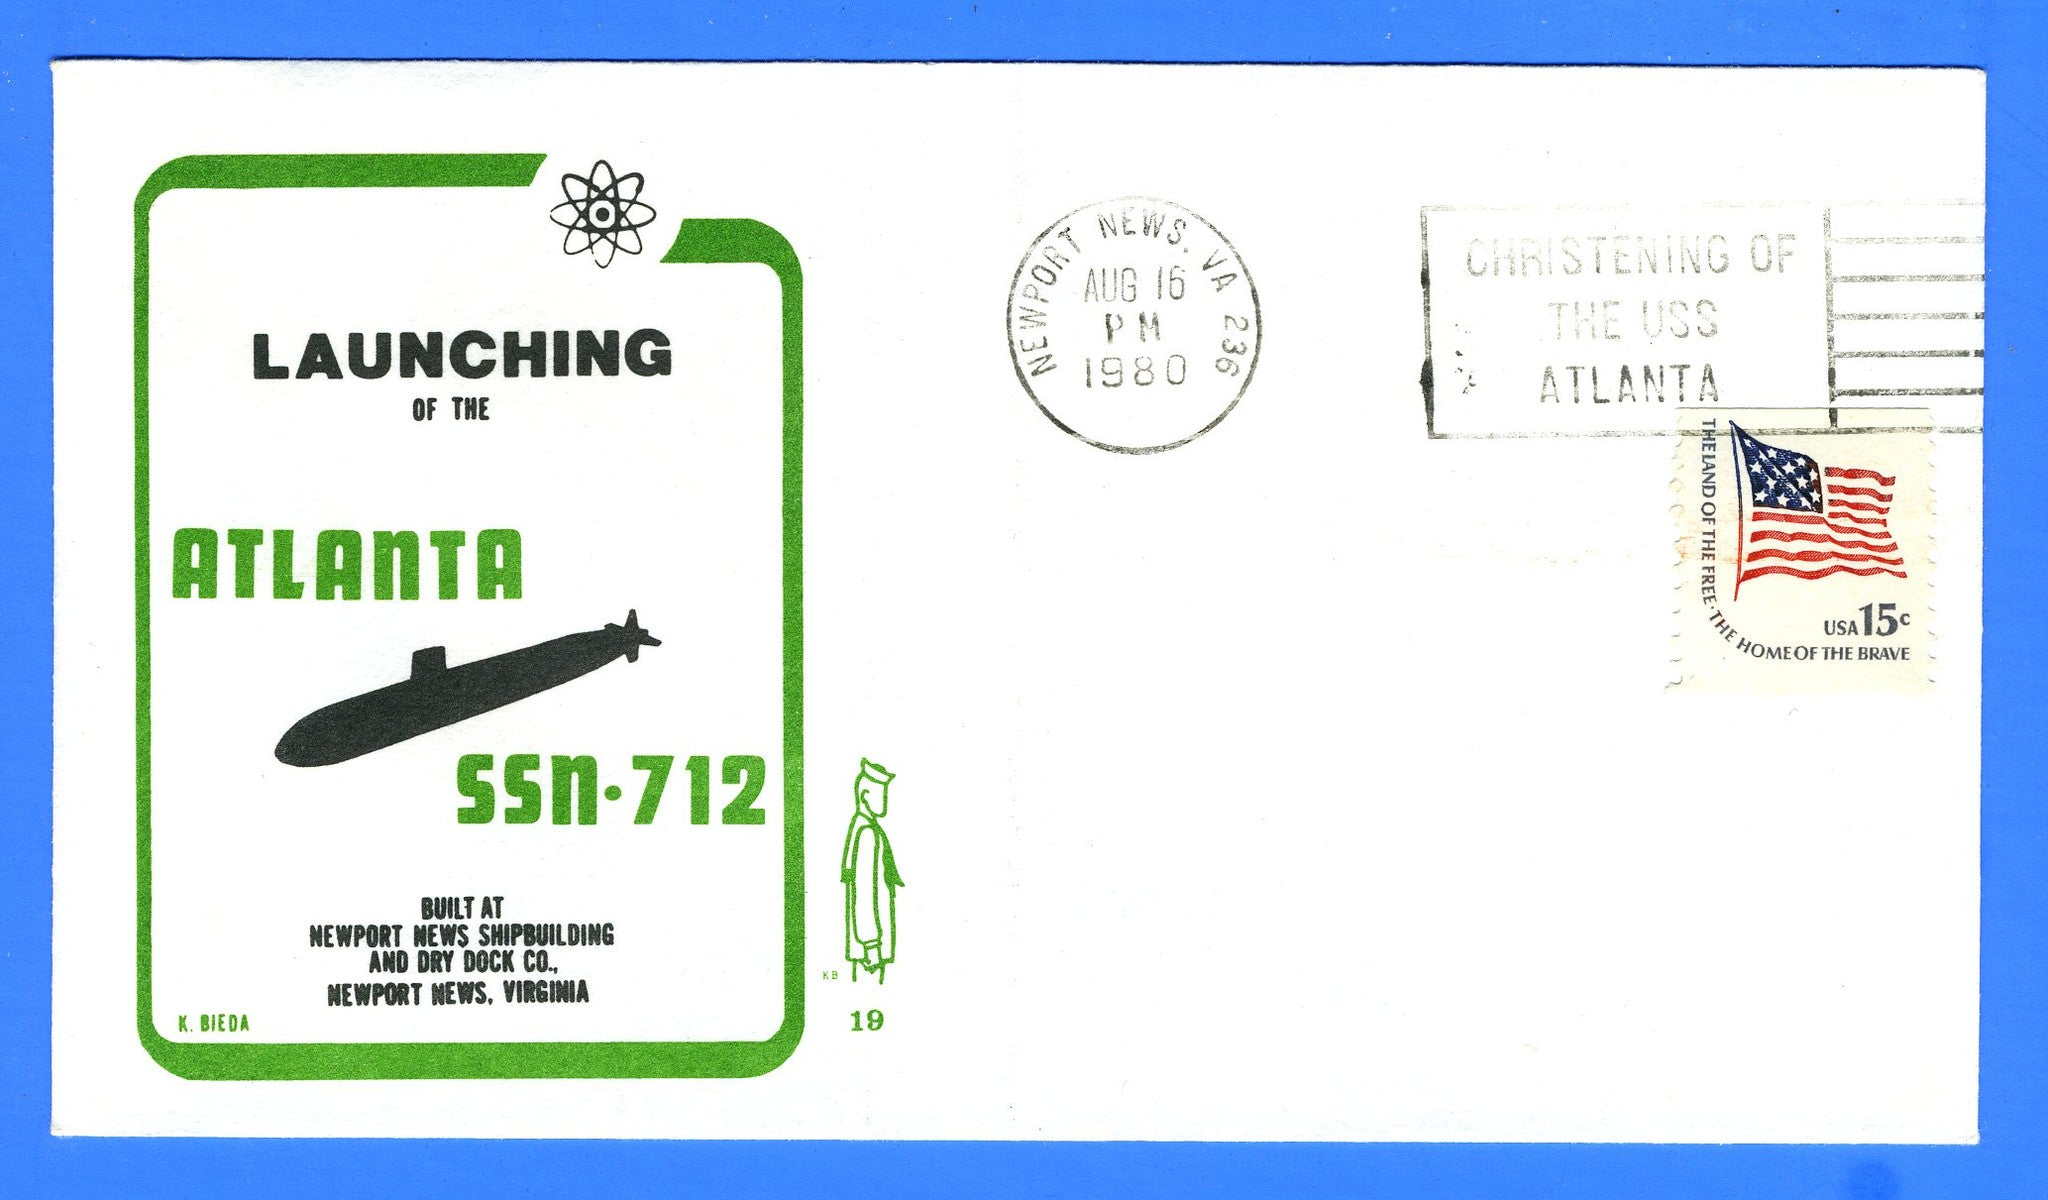 USS Atlanta SSN-712 Launched August 16, 1980  Cachet by Ken Bieda